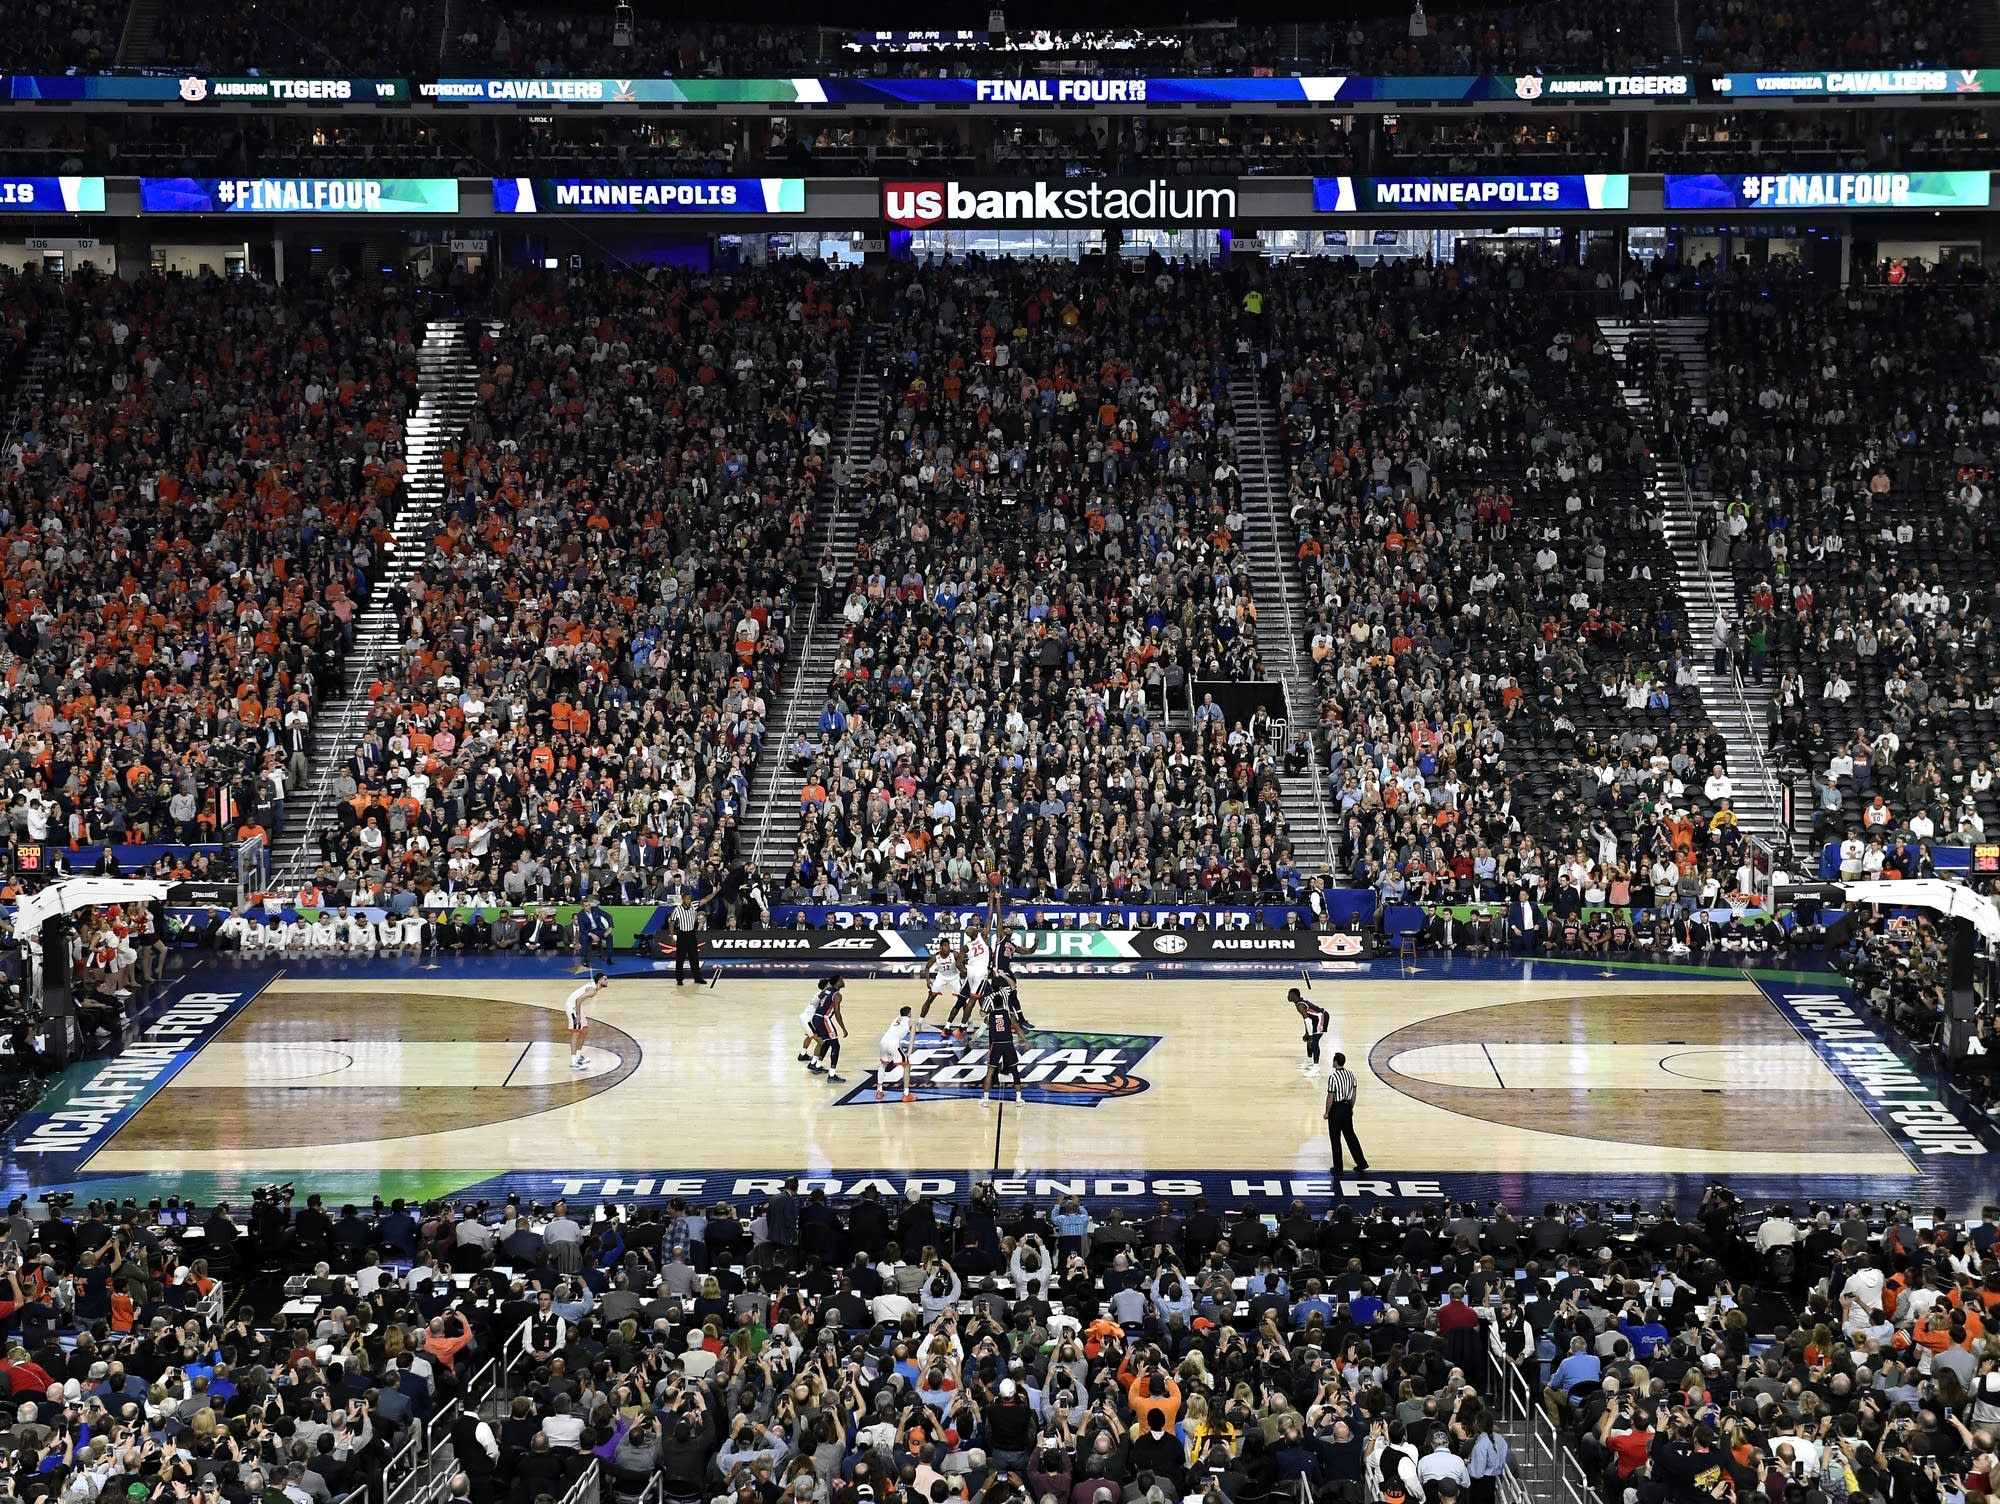 Tip-off of Final Four in Minneapolis